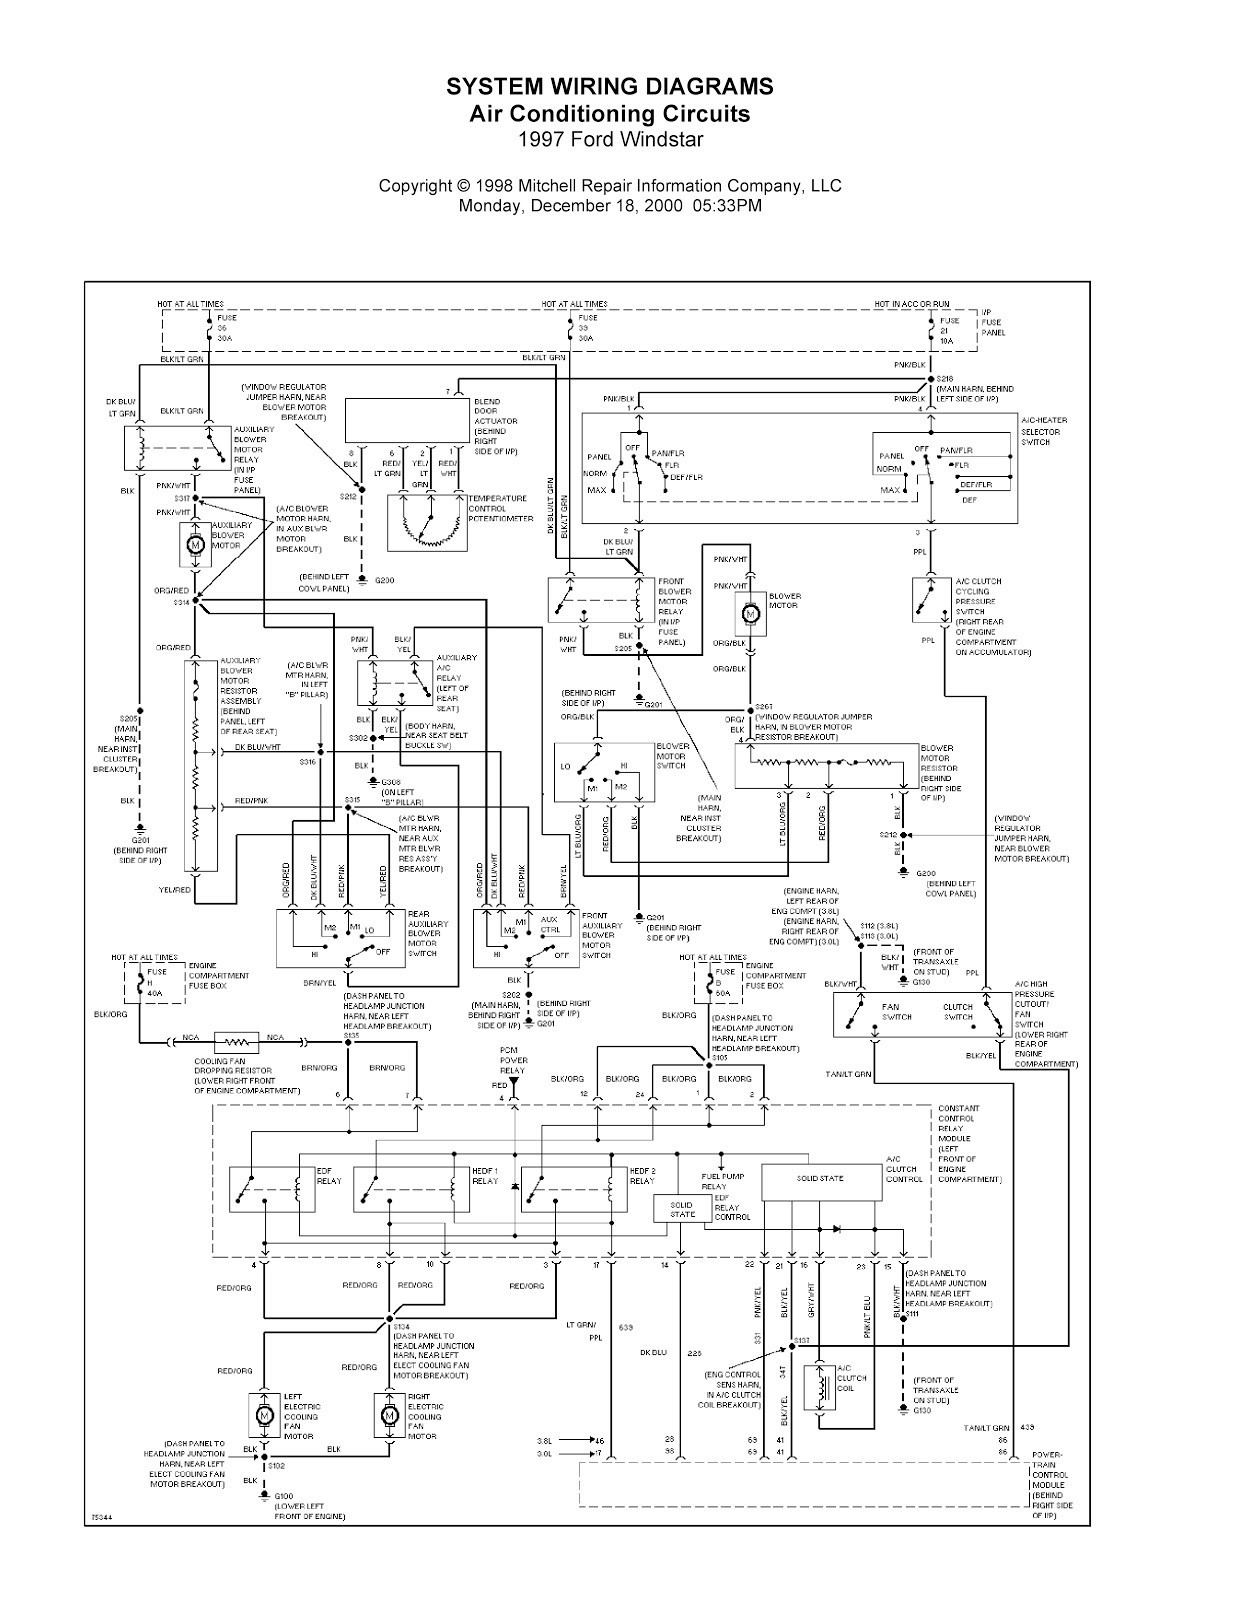 Wiring Diagram For 2000 Ford Windstar Data Jeep Grand Cherokee Fuse Box 2003 Electrical Engine